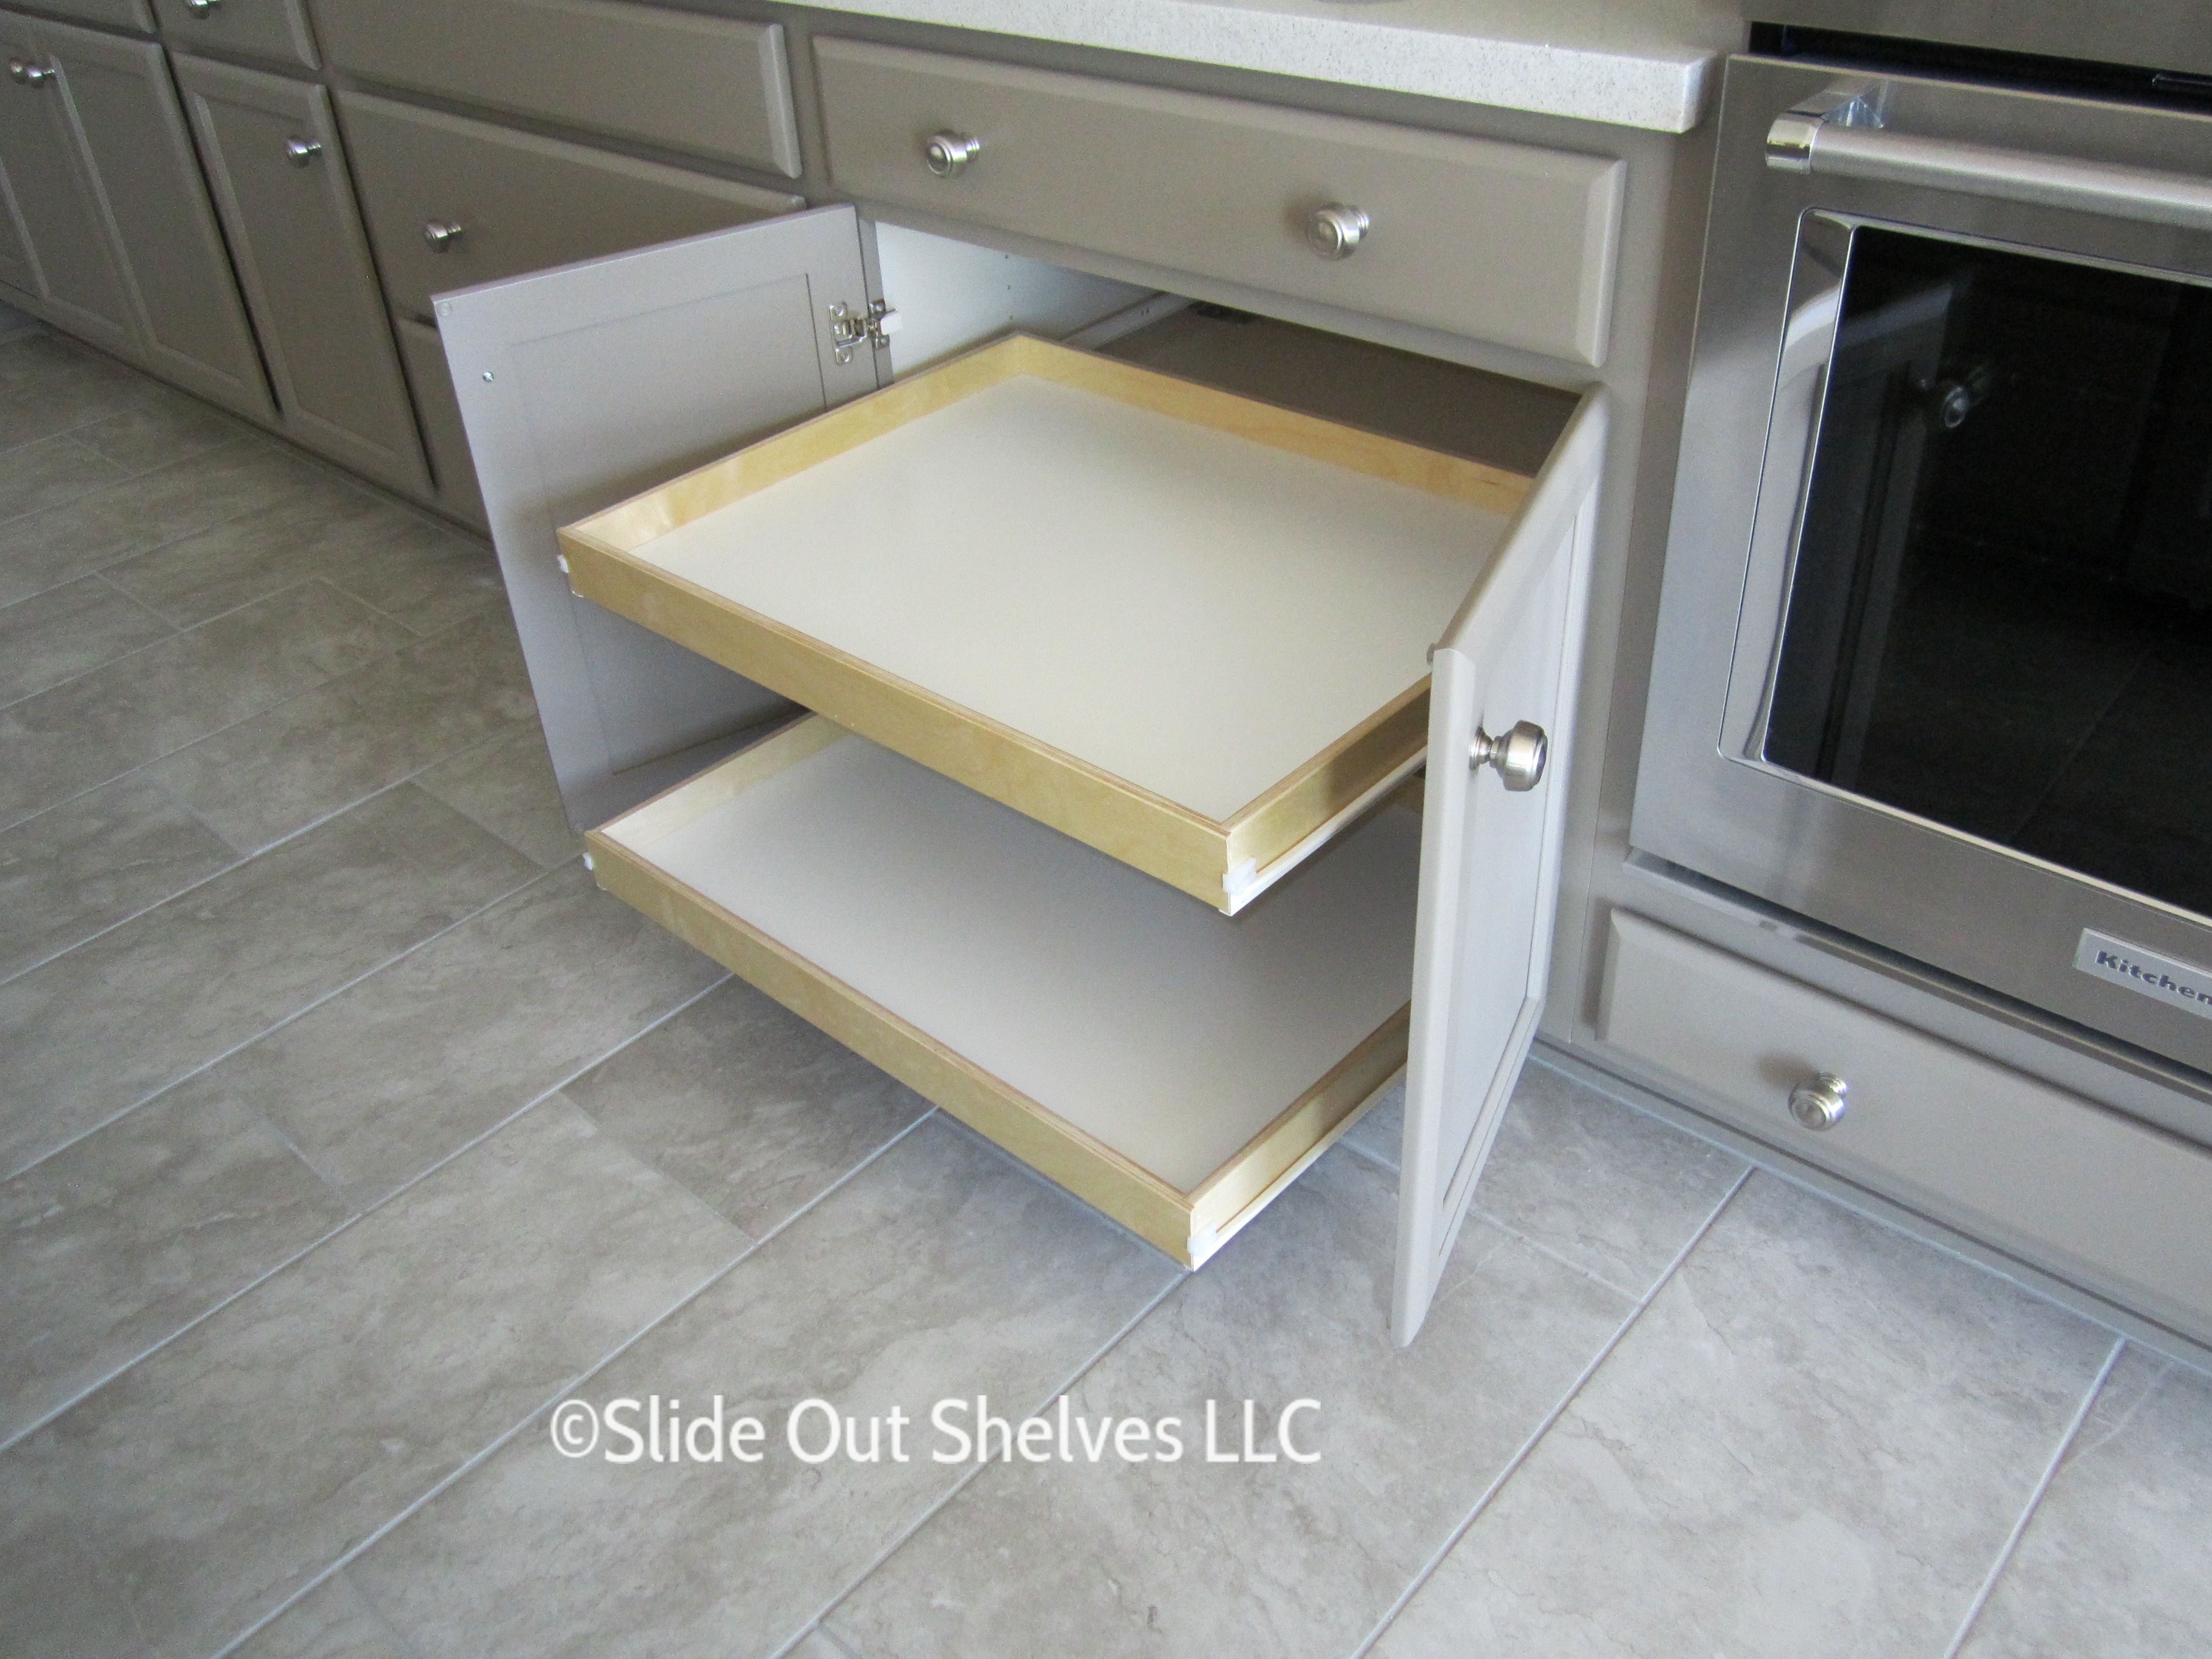 Pull Out Shelf For Kitchen Cabinets 26 36 Wide Pull Out Kitchen Shelves Kitchen Shelves Slide Out Shelves